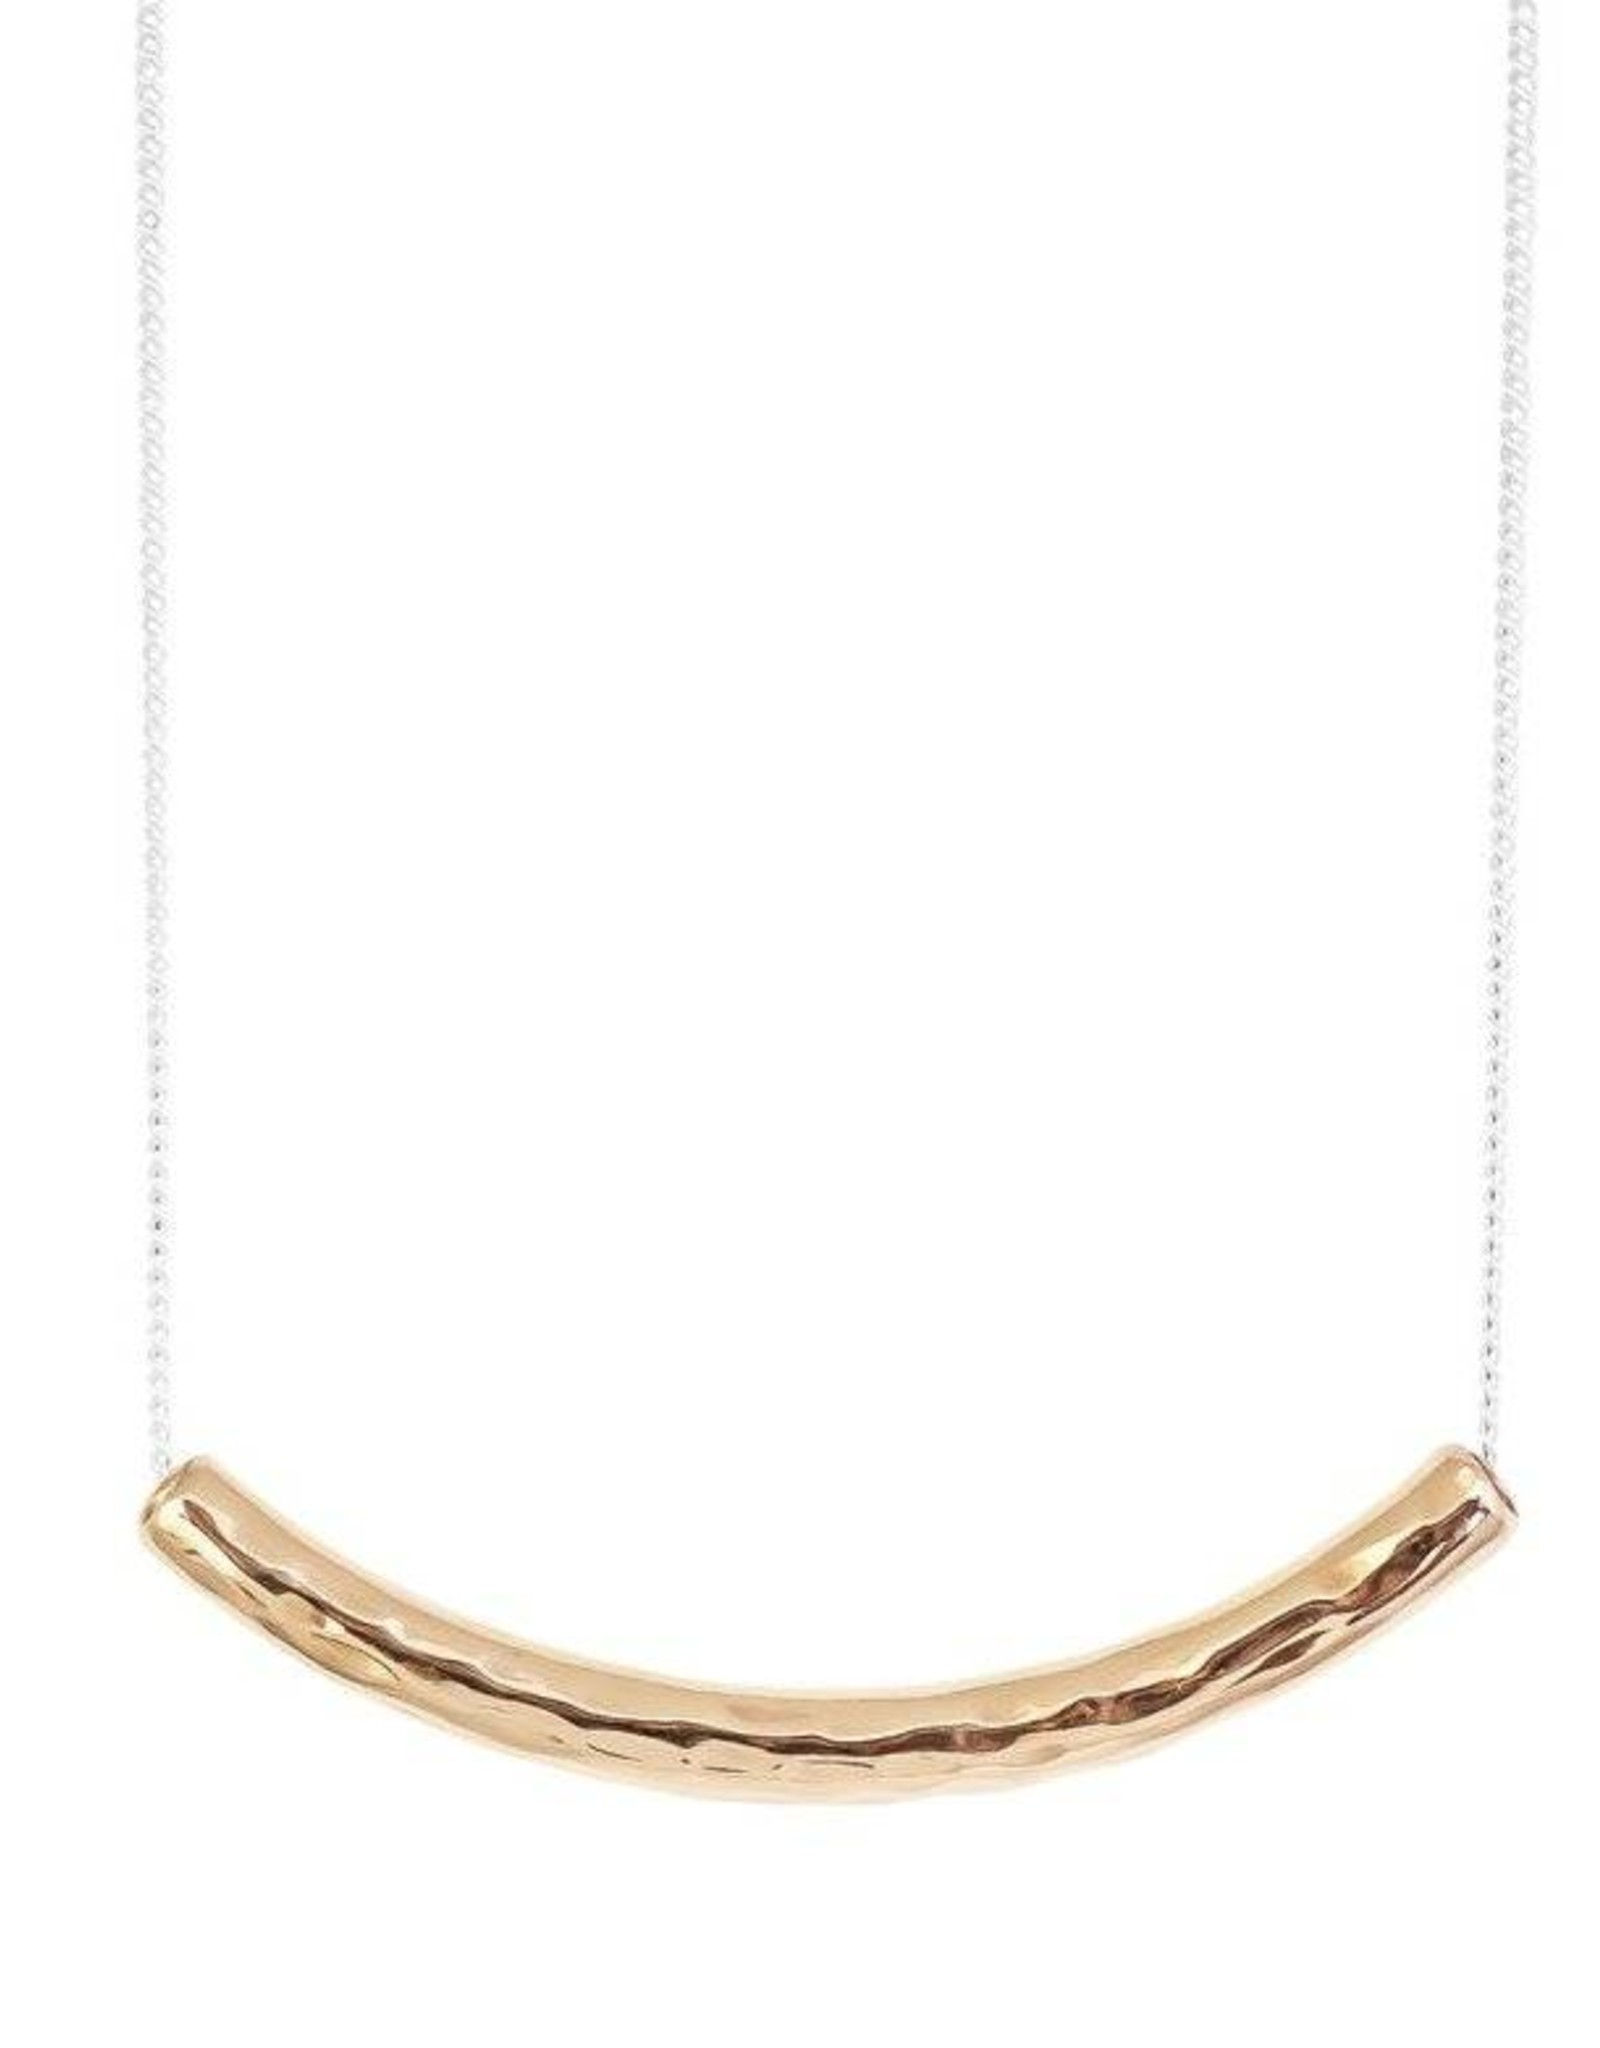 HUSK MEDIUM HAMMERED BAR NECKLACE - SHORT / ROSE BAR